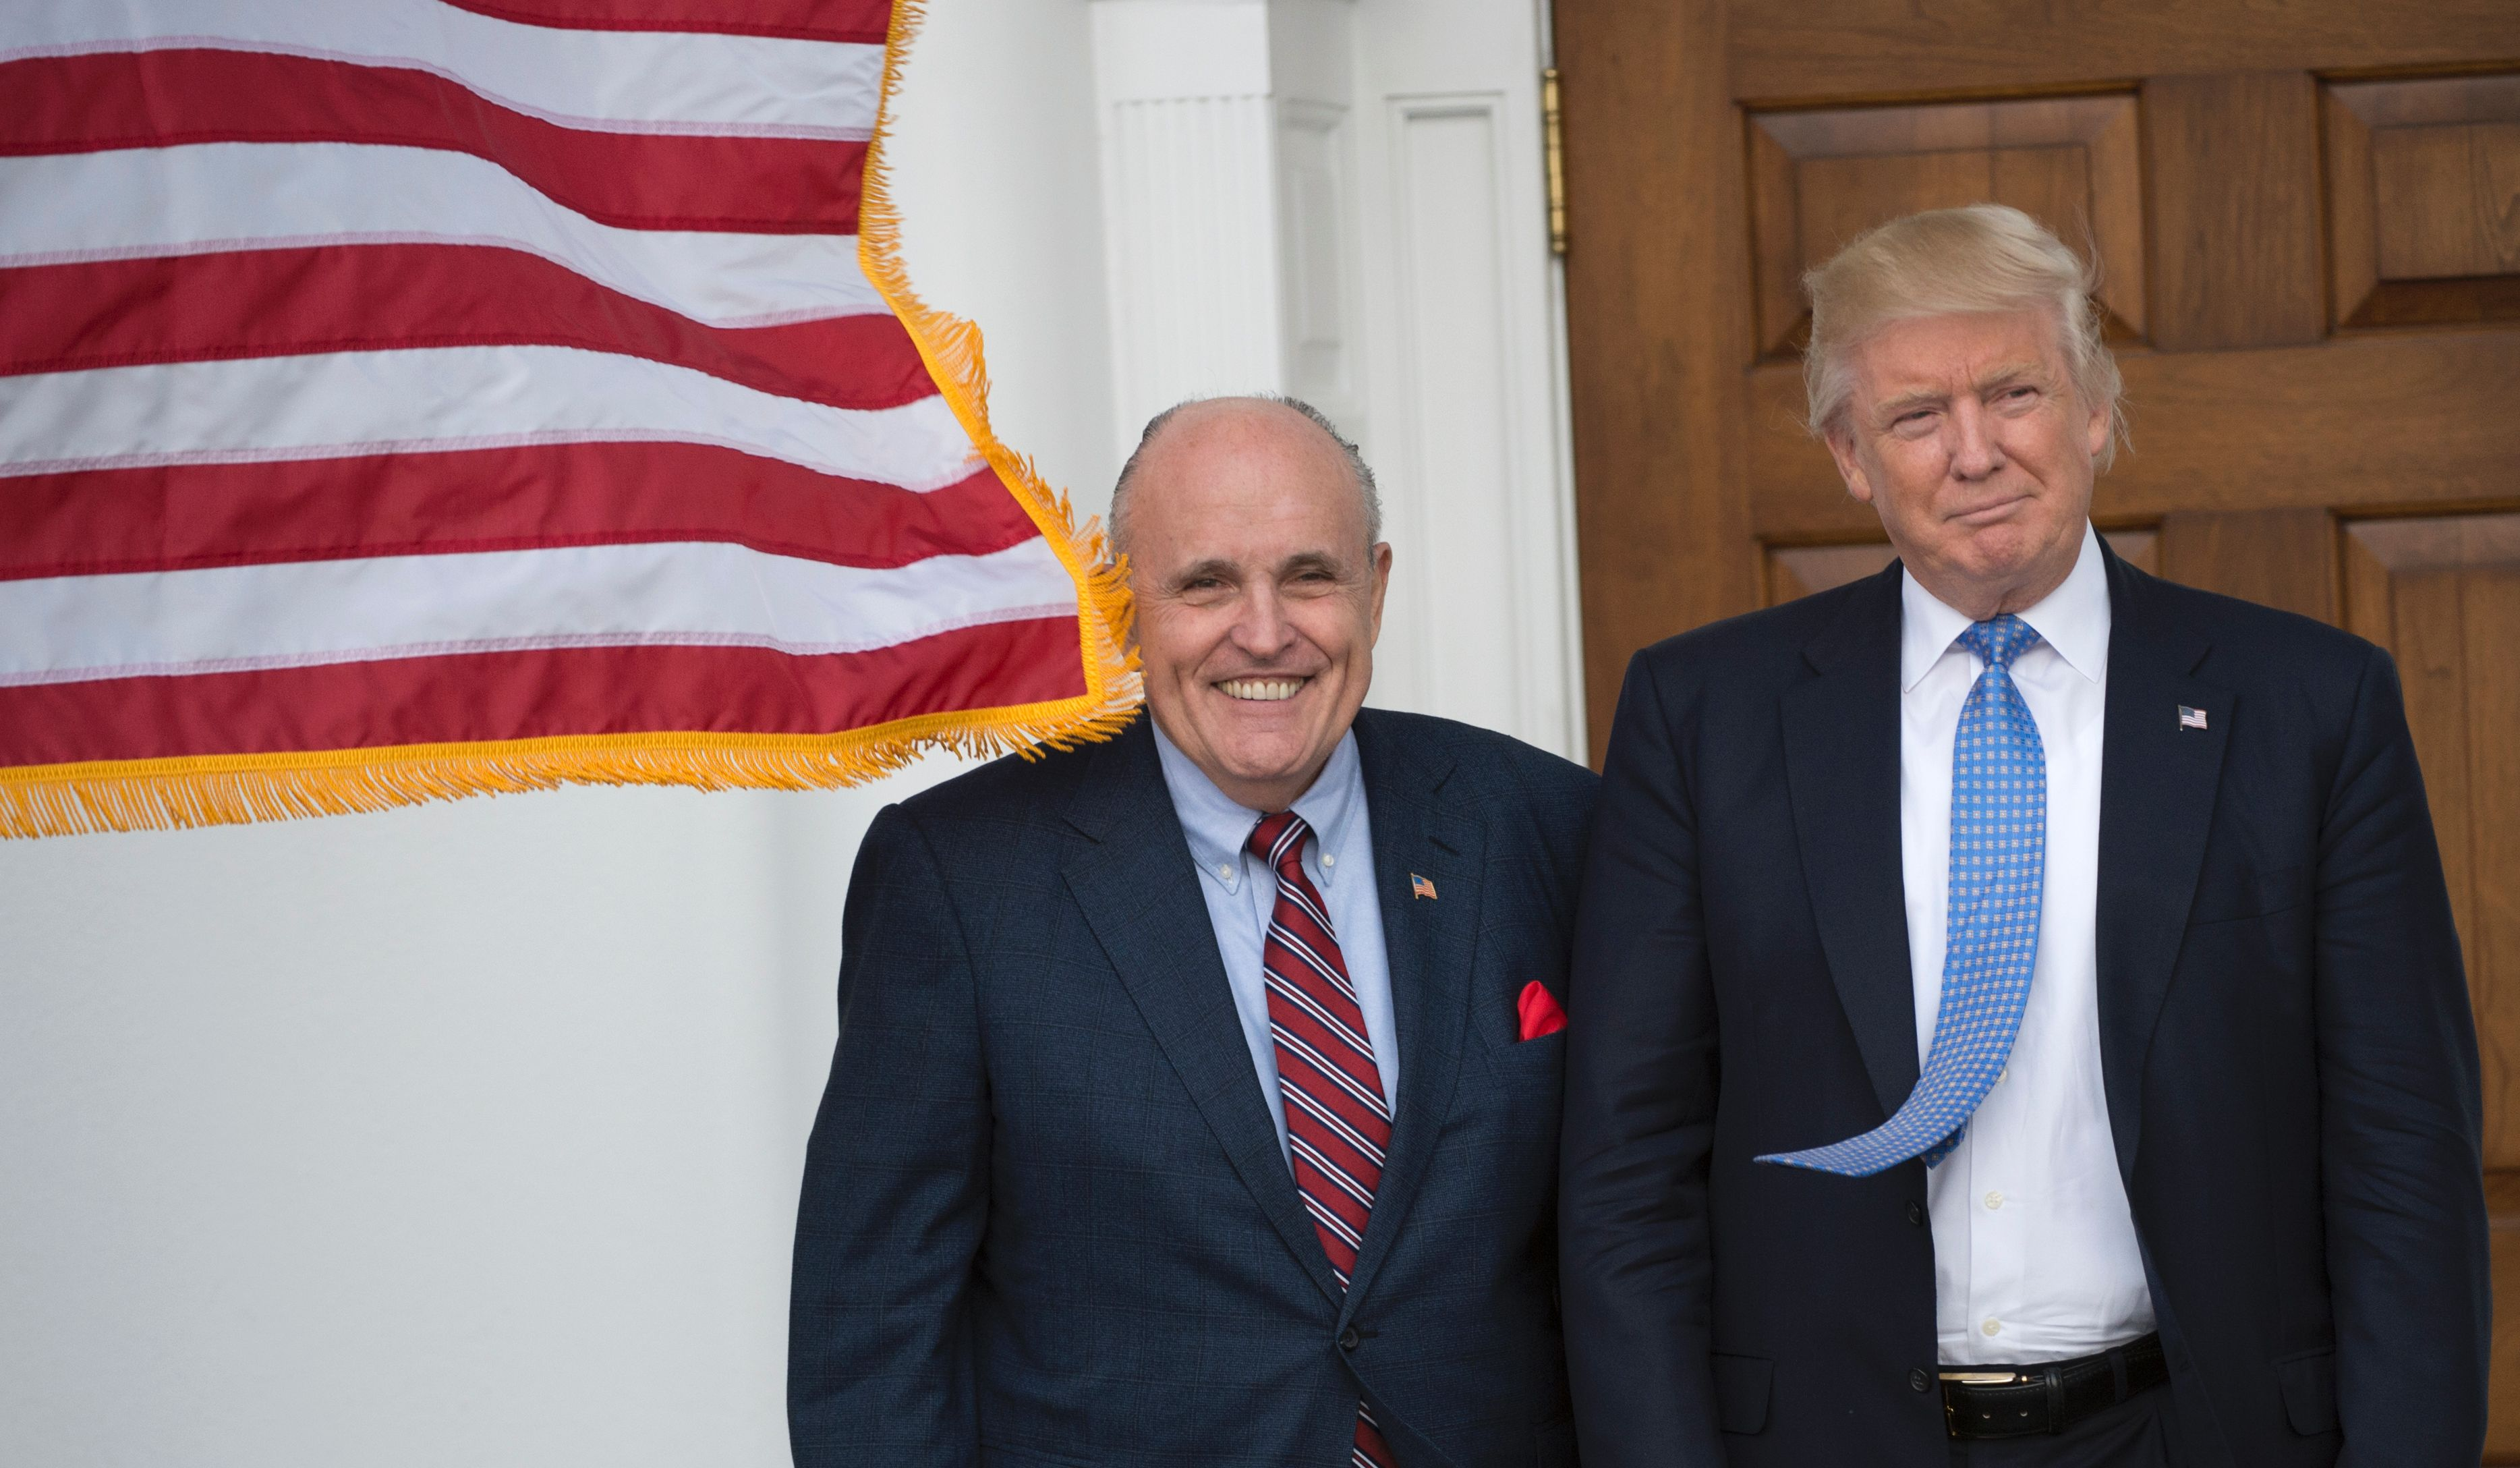 President-elect Donald Trump meets with former New York City Mayor Rudy Giuliani at the clubhouse of Trump National Golf Club November 20, 2016 in Bedminster, New Jersey.